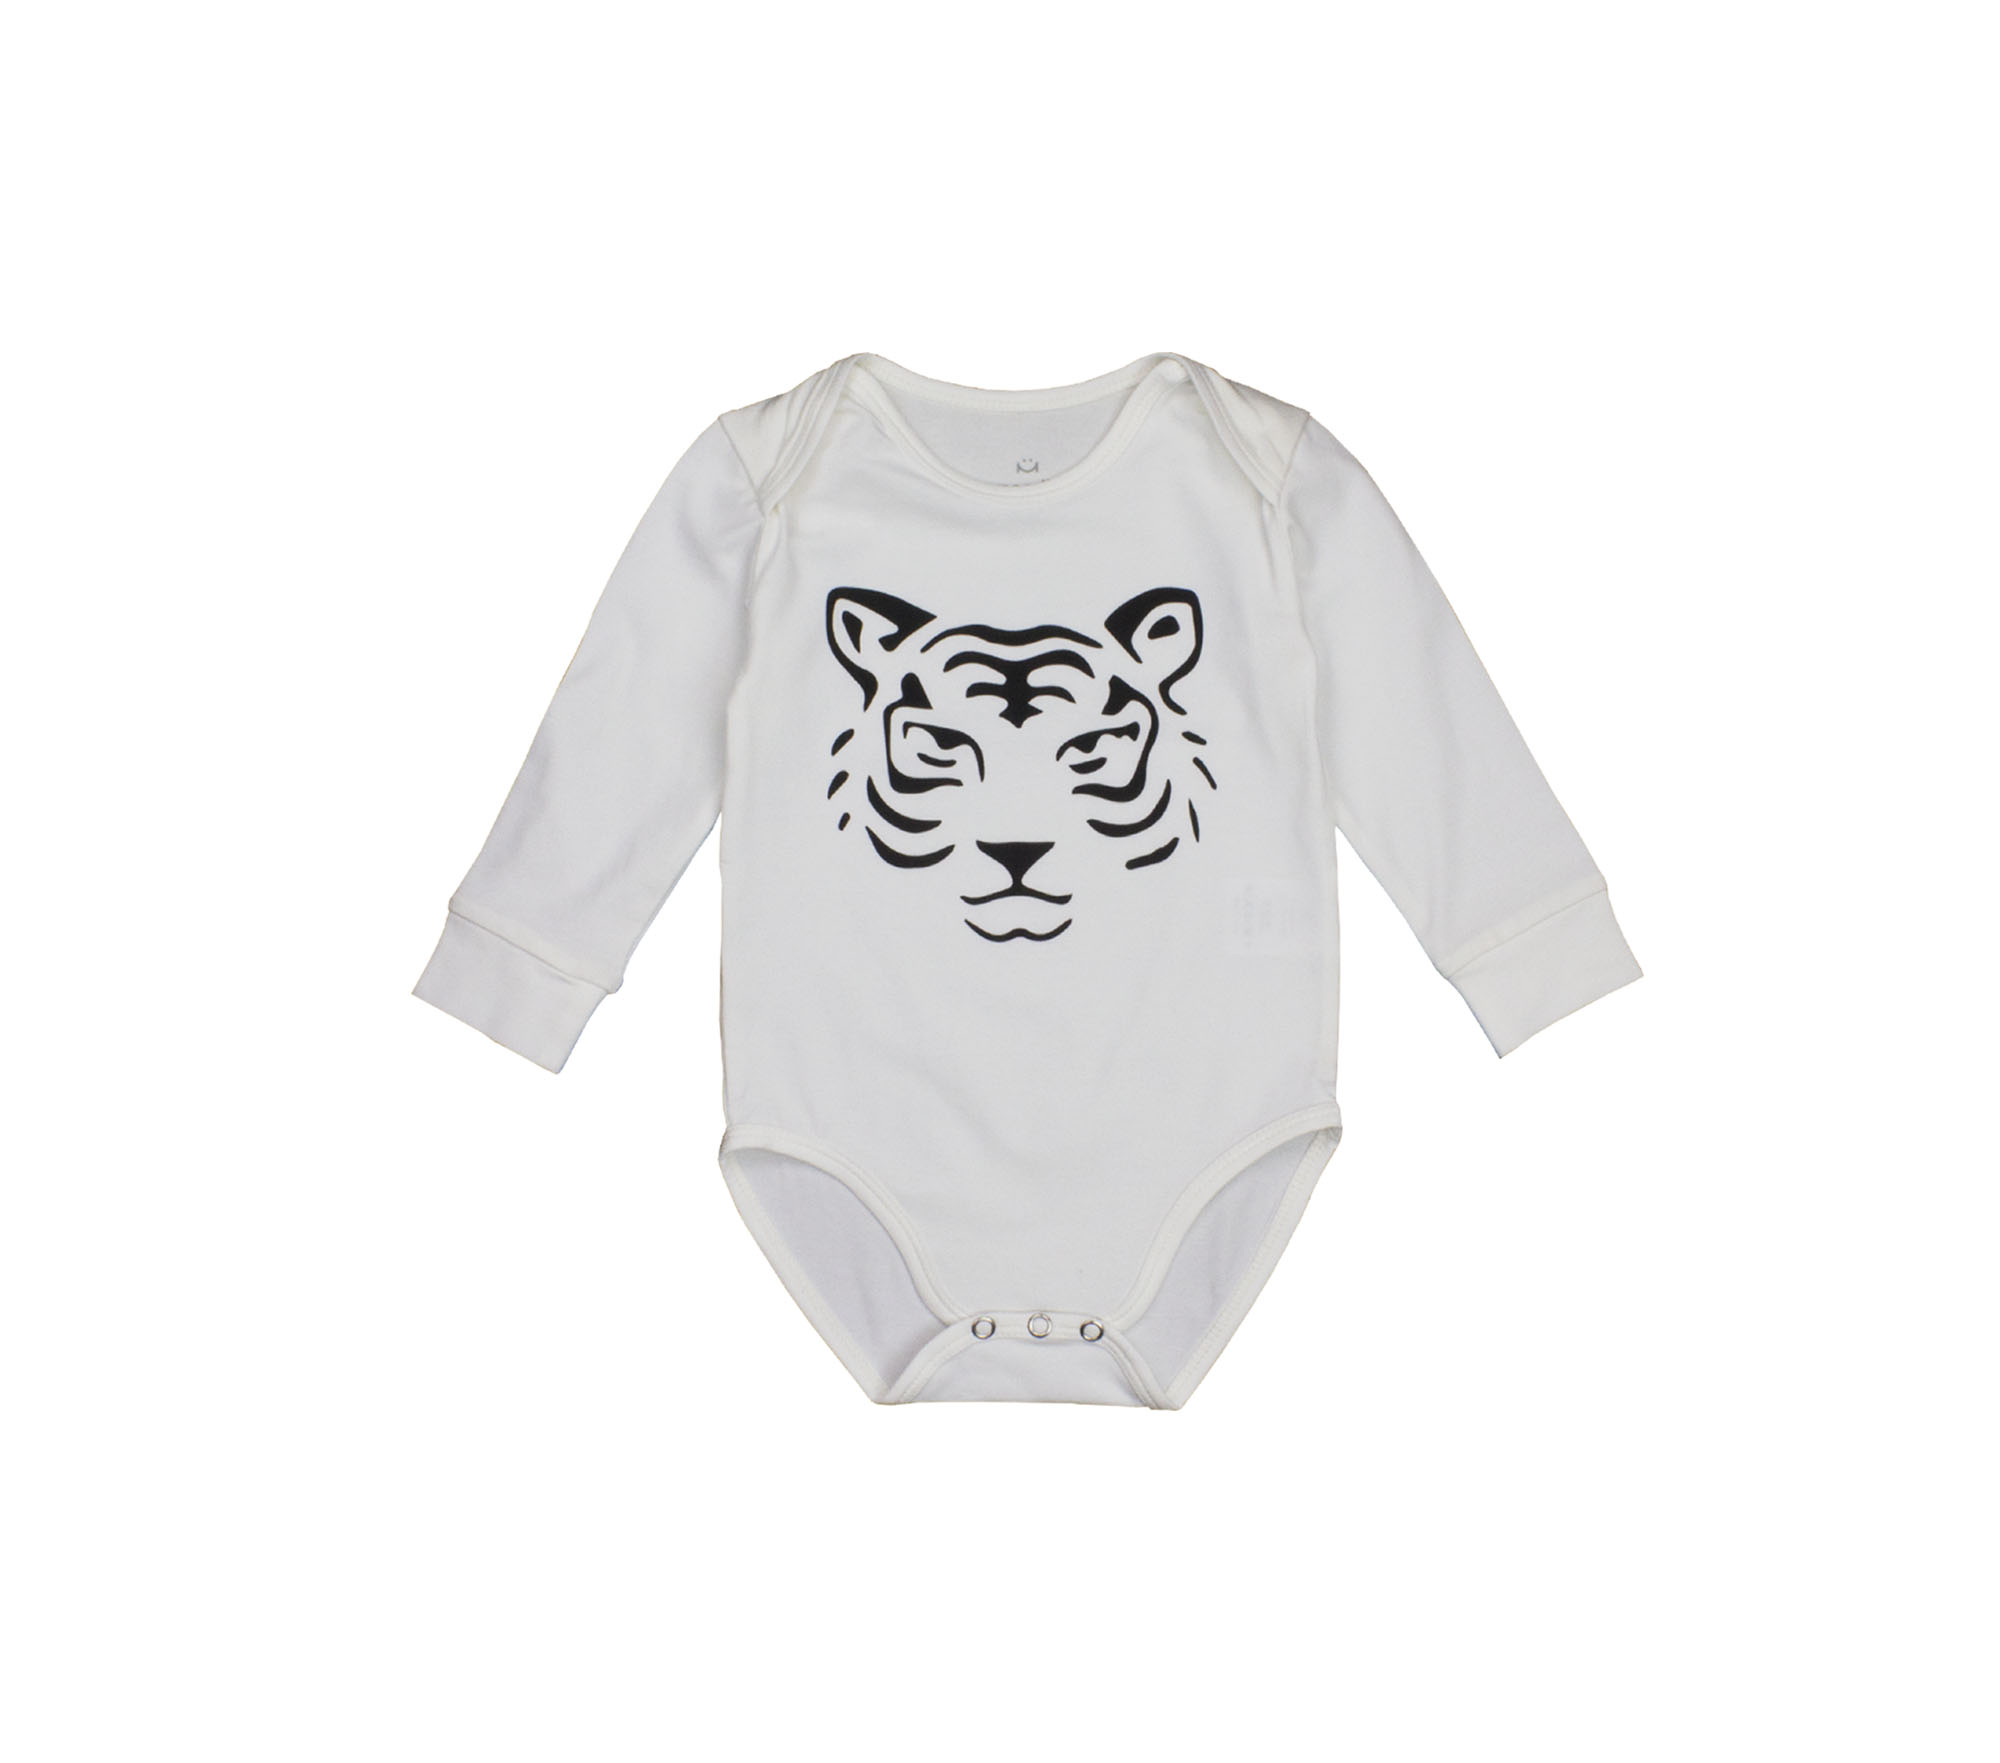 Body baby vit tigerprint- Bobo